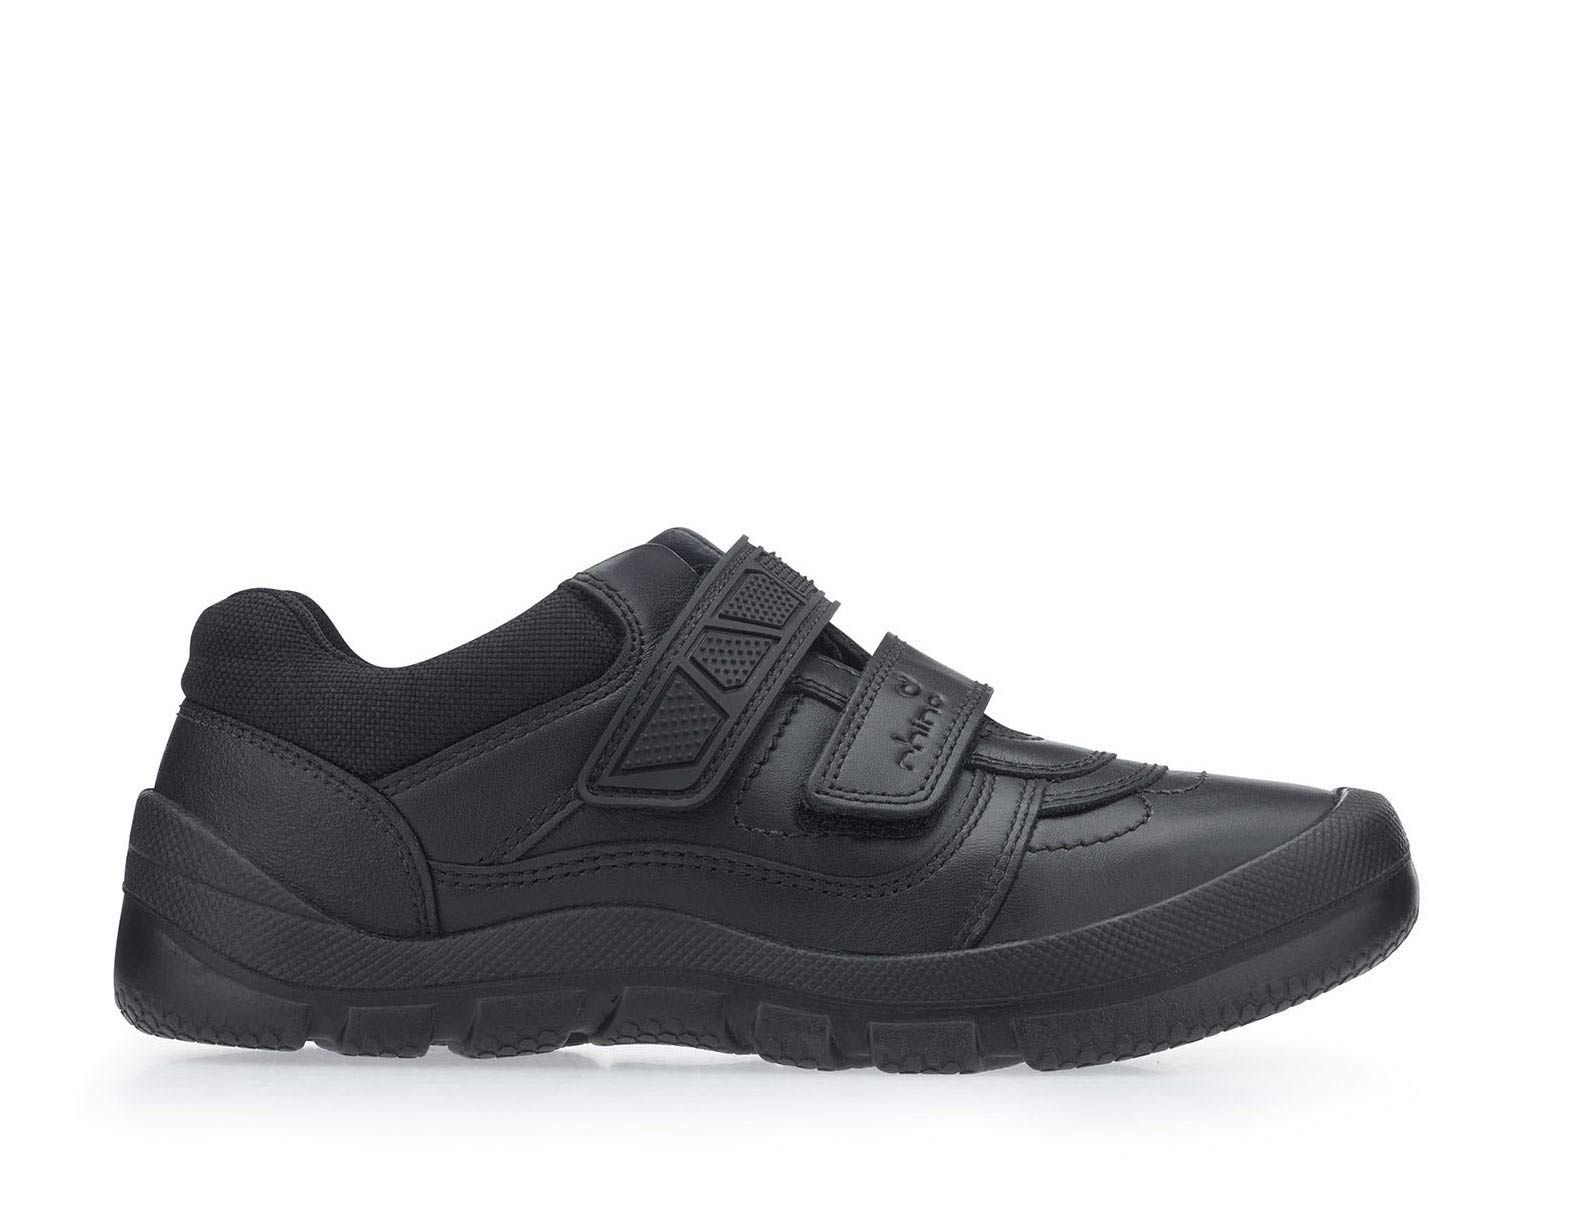 Size 9 School Shoes for Girls & Boys